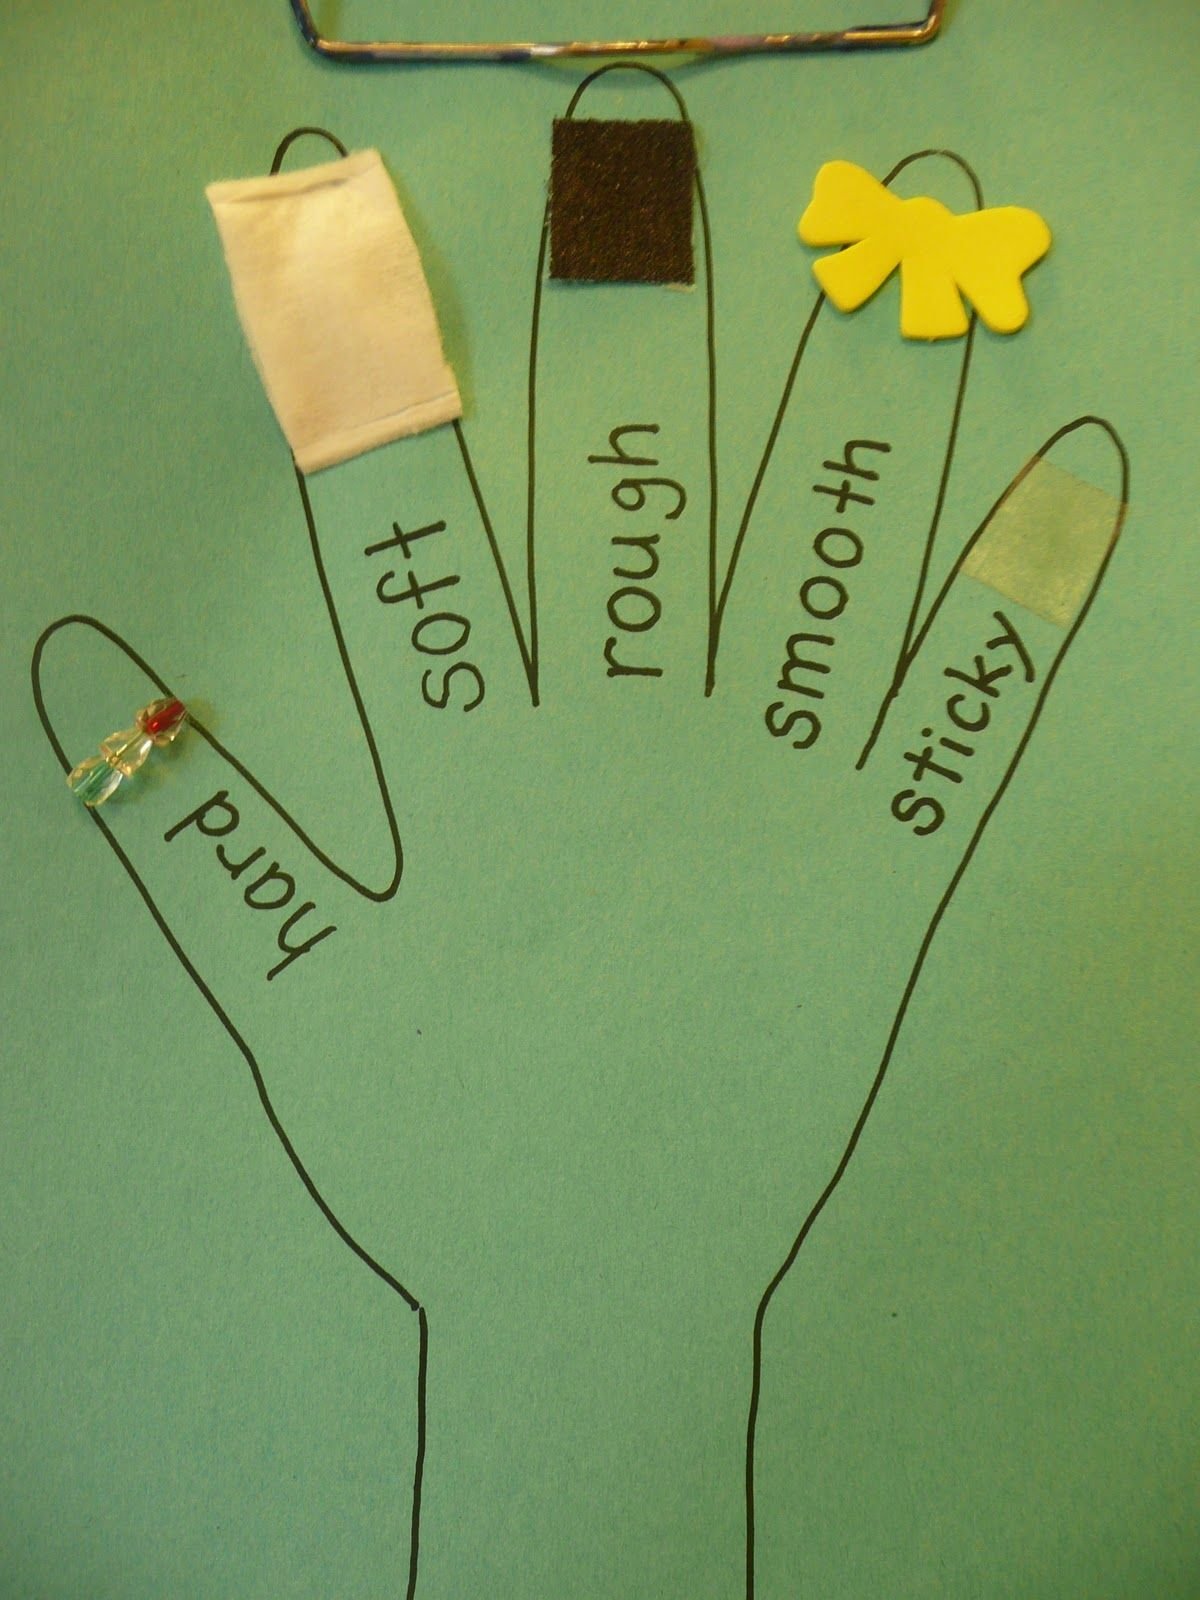 Here S Another Example Of Creating A Sensory Hand For